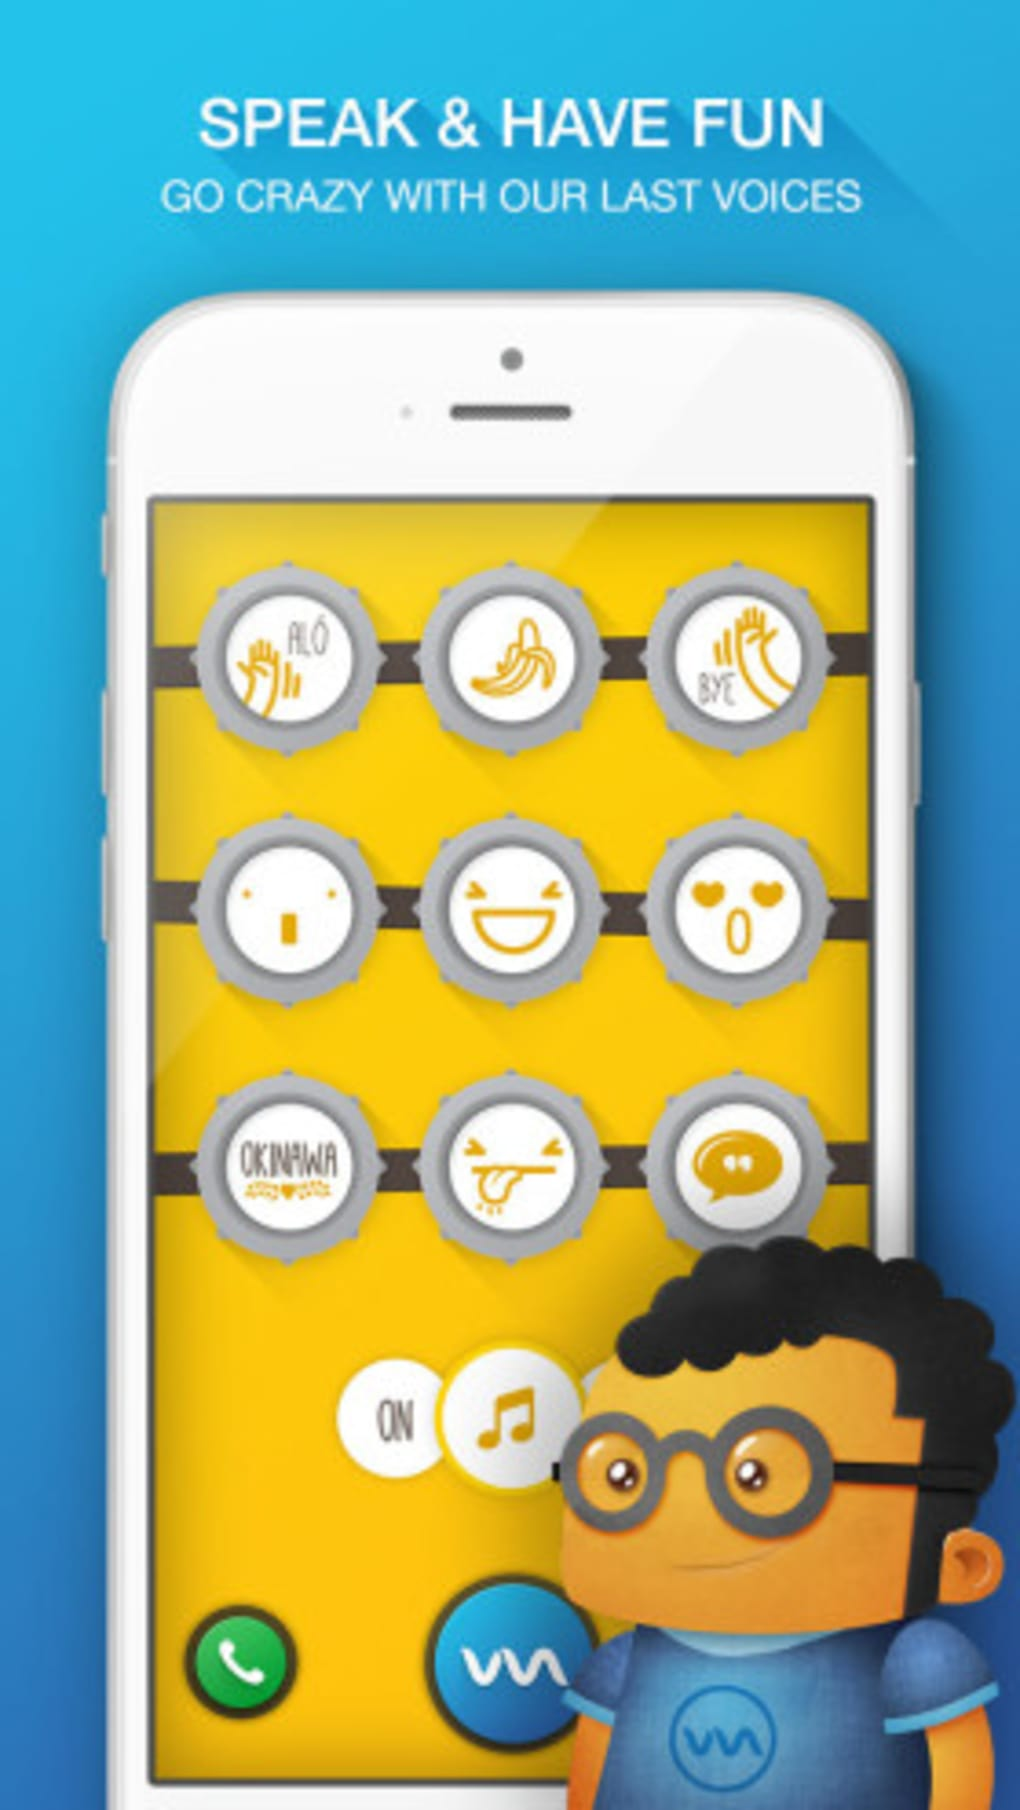 VoiceMod for iPhone - Download